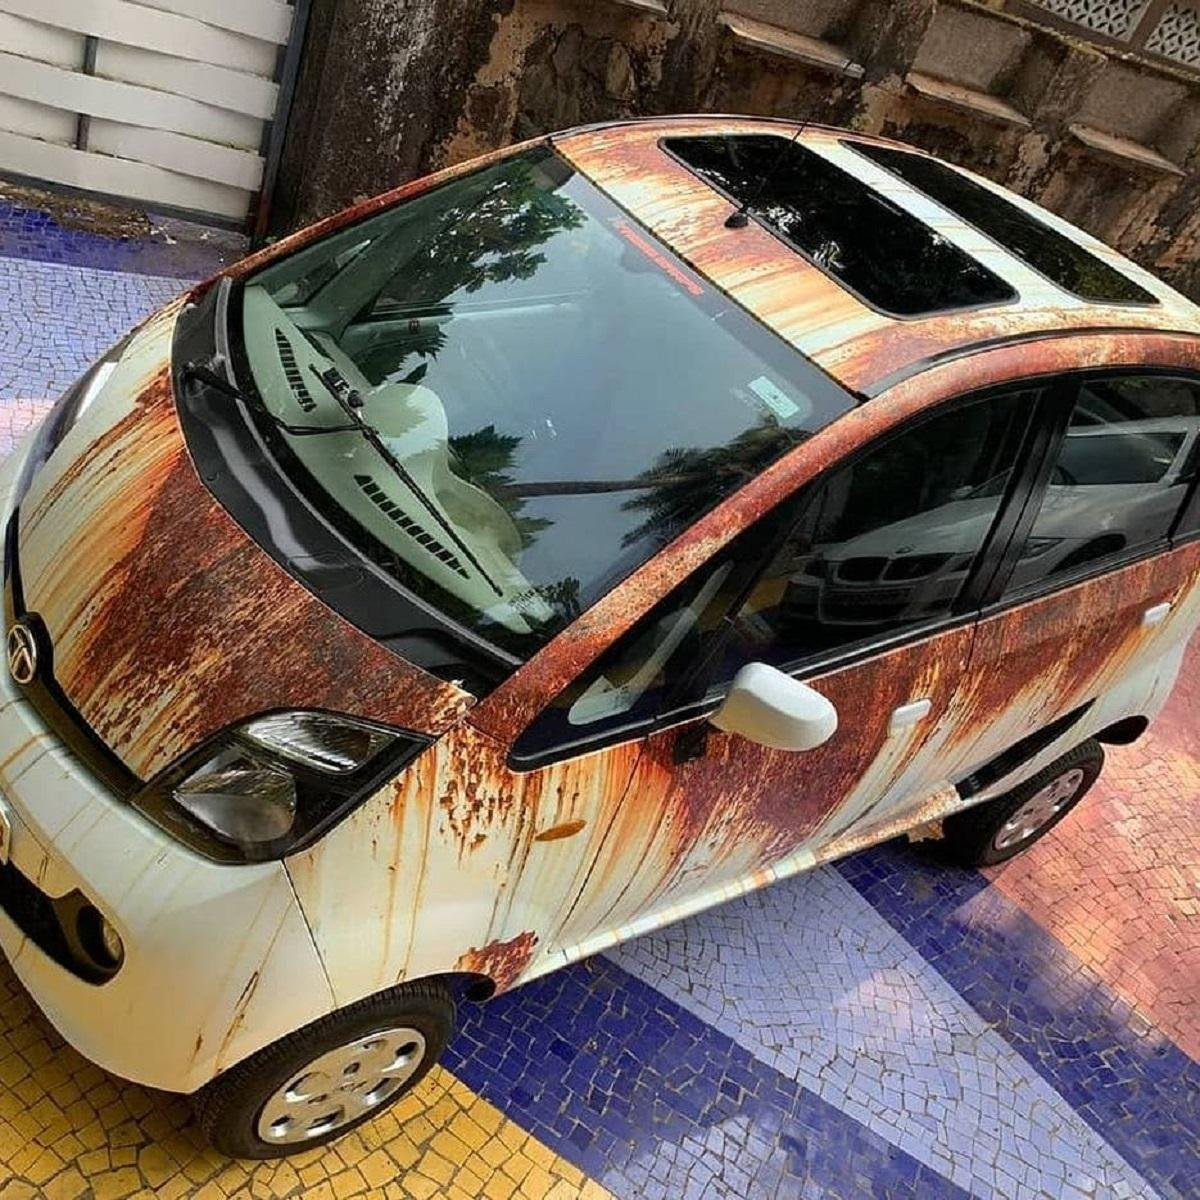 Check Out This Tata Nano With Dual Sunroofs And Interesting Wrap Job